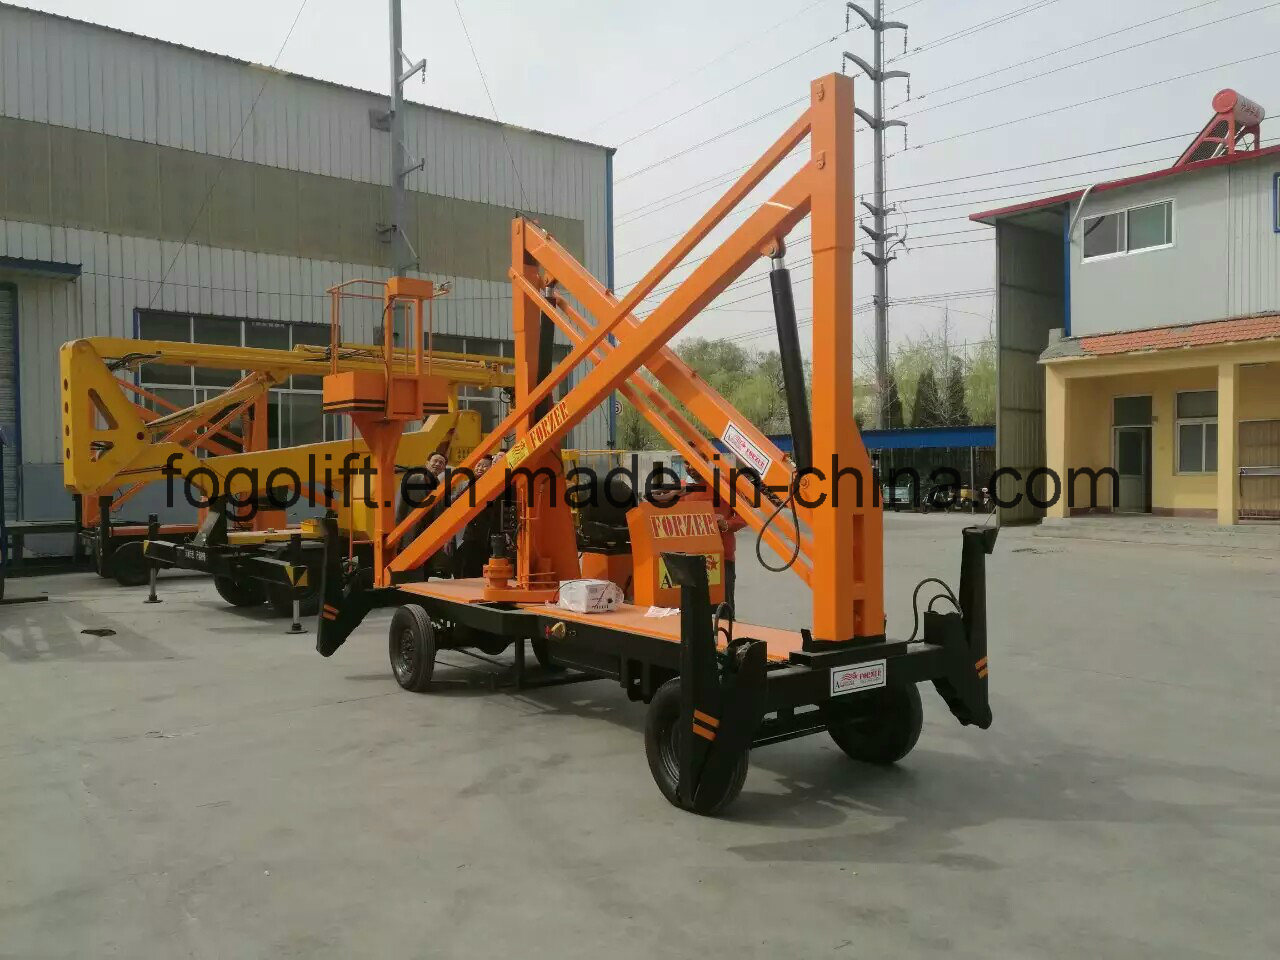 Self Propelled Mobile Hydraulic Articulated Boom Man Lifts for Sale